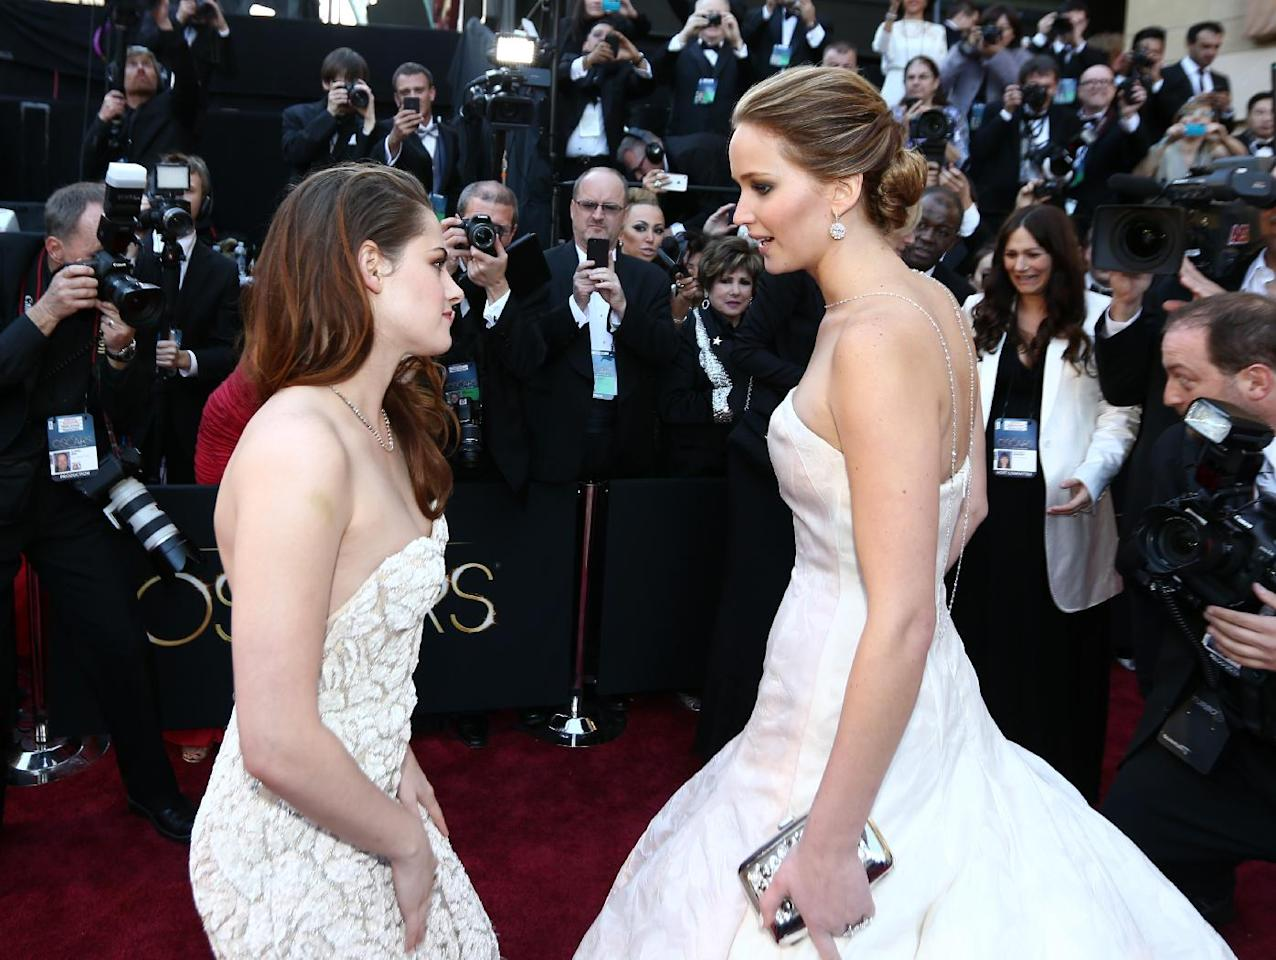 Actresses Kristen Stewart, left, and Jennifer Lawrence arrive at the Oscars at the Dolby Theatre on Sunday Feb. 24, 2013, in Los Angeles. (Photo by Matt Sayles/Invision/AP)